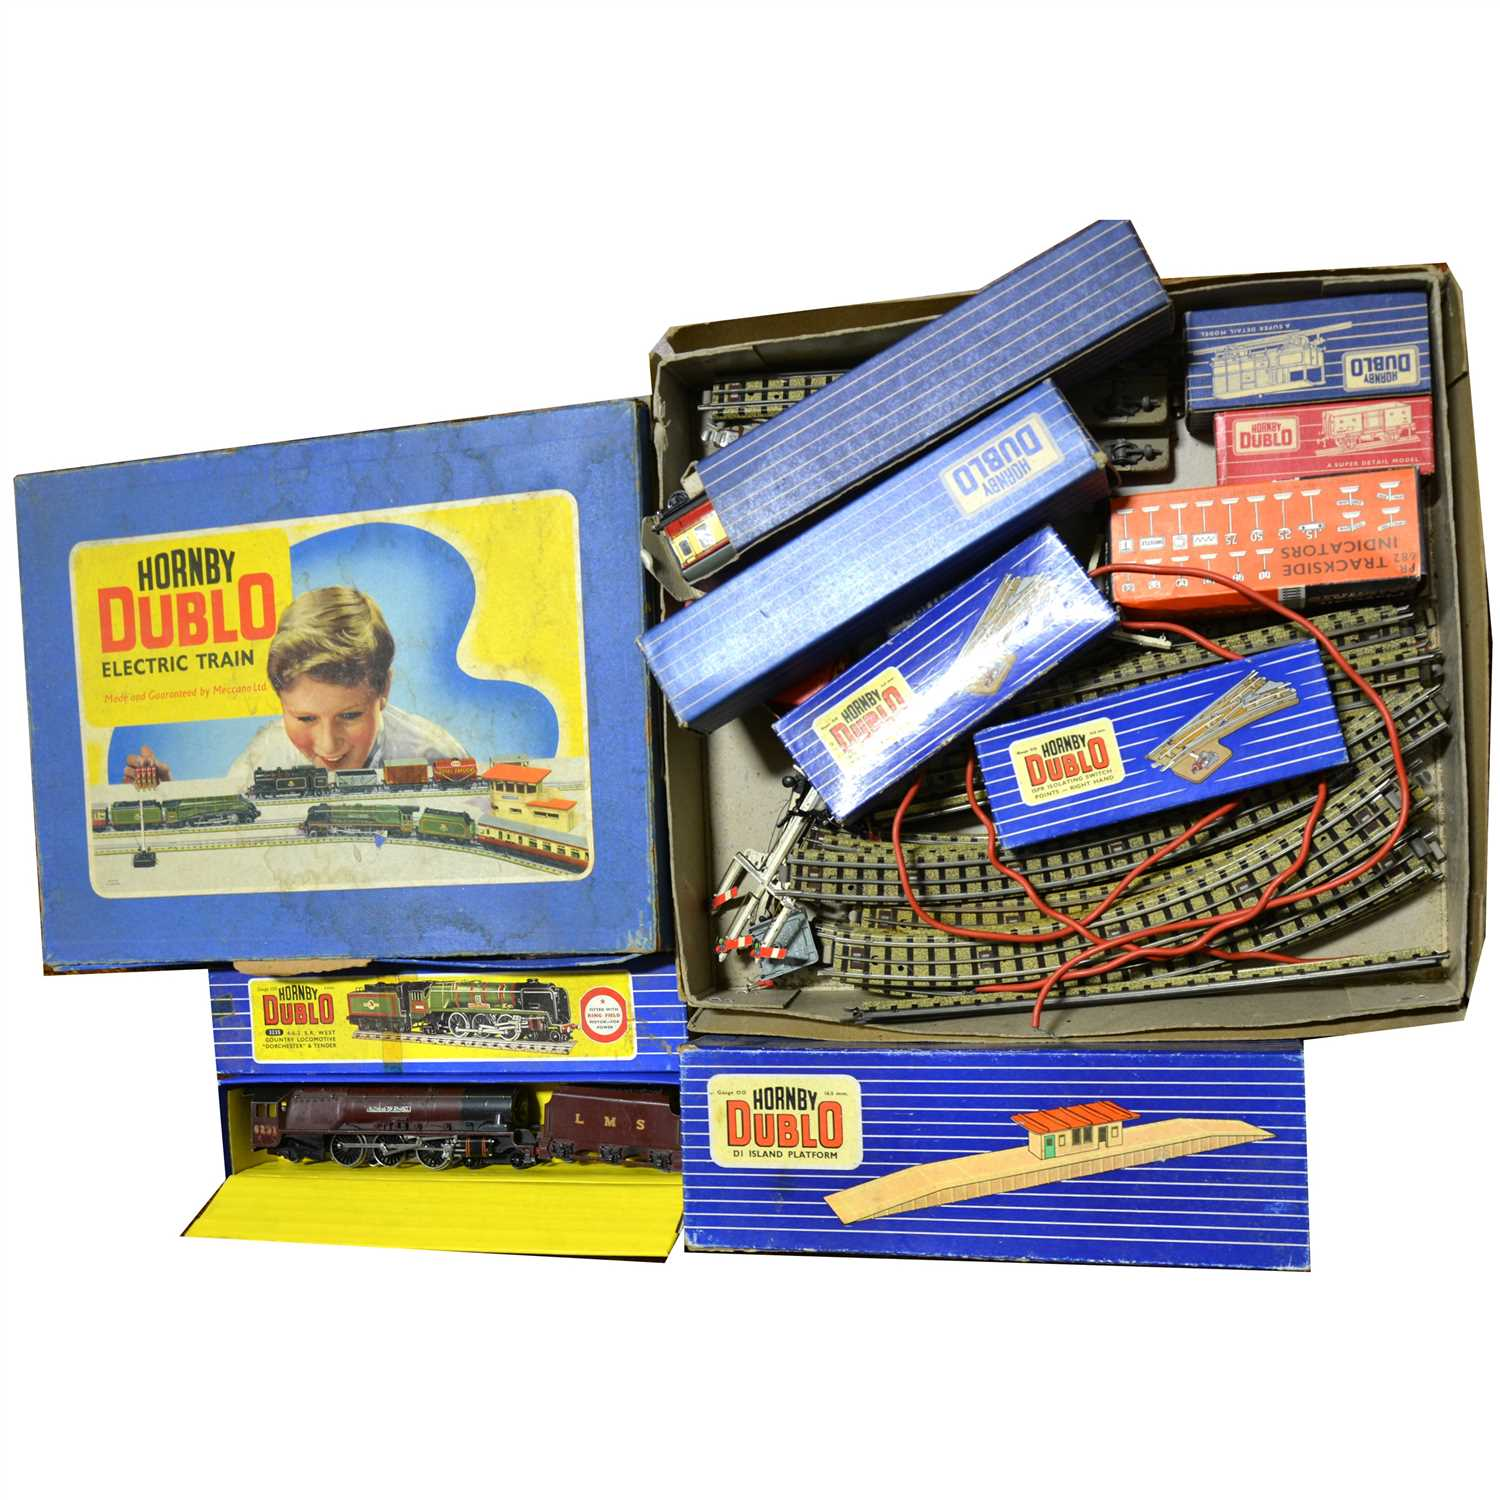 Lot 23-Hornby Dublo OO gauge model railways; including EDG18 2-6-4 Tank Goods train set and others.